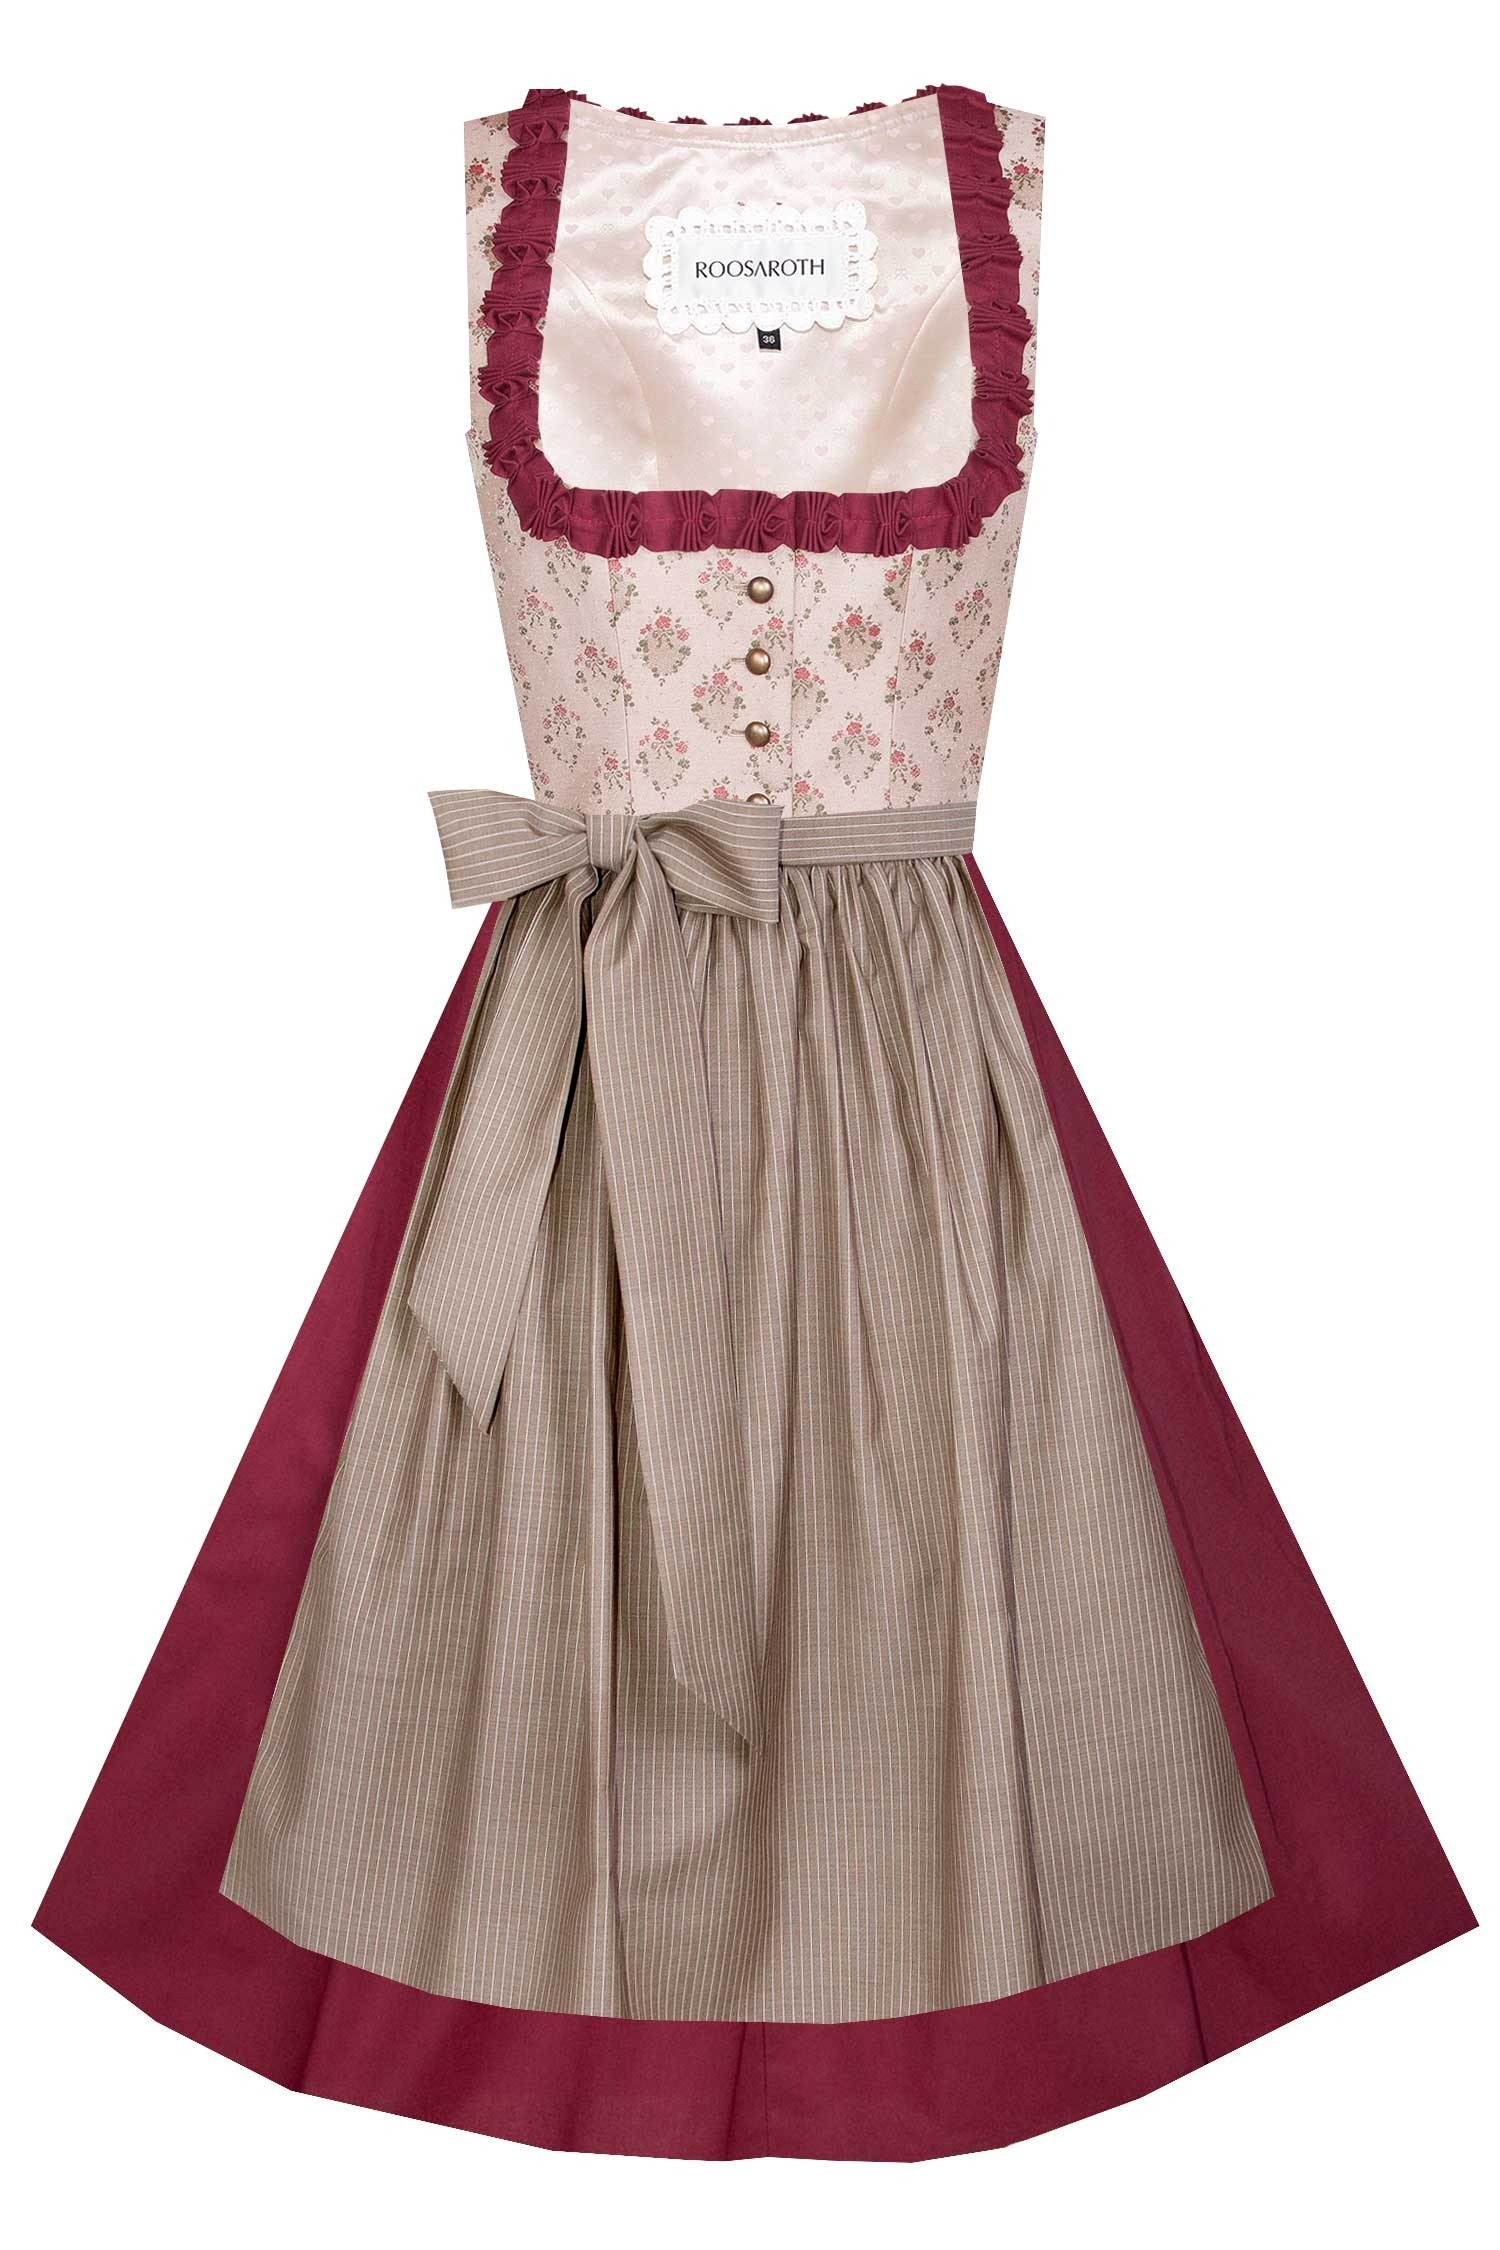 DIRNDL LUISE RUBY RED